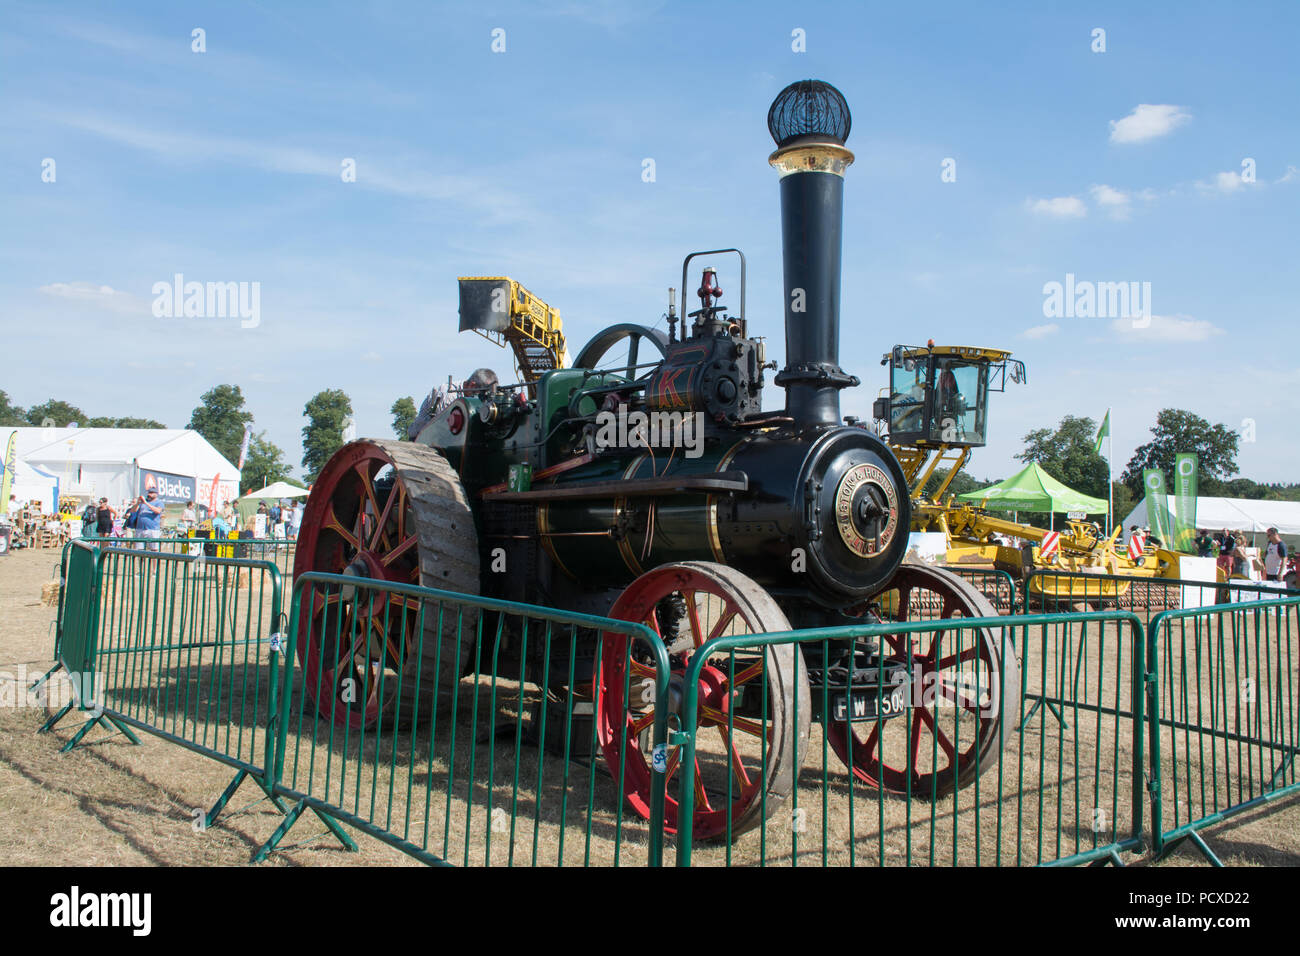 Traction engine at the Countryfile Live show 2018 - Stock Image